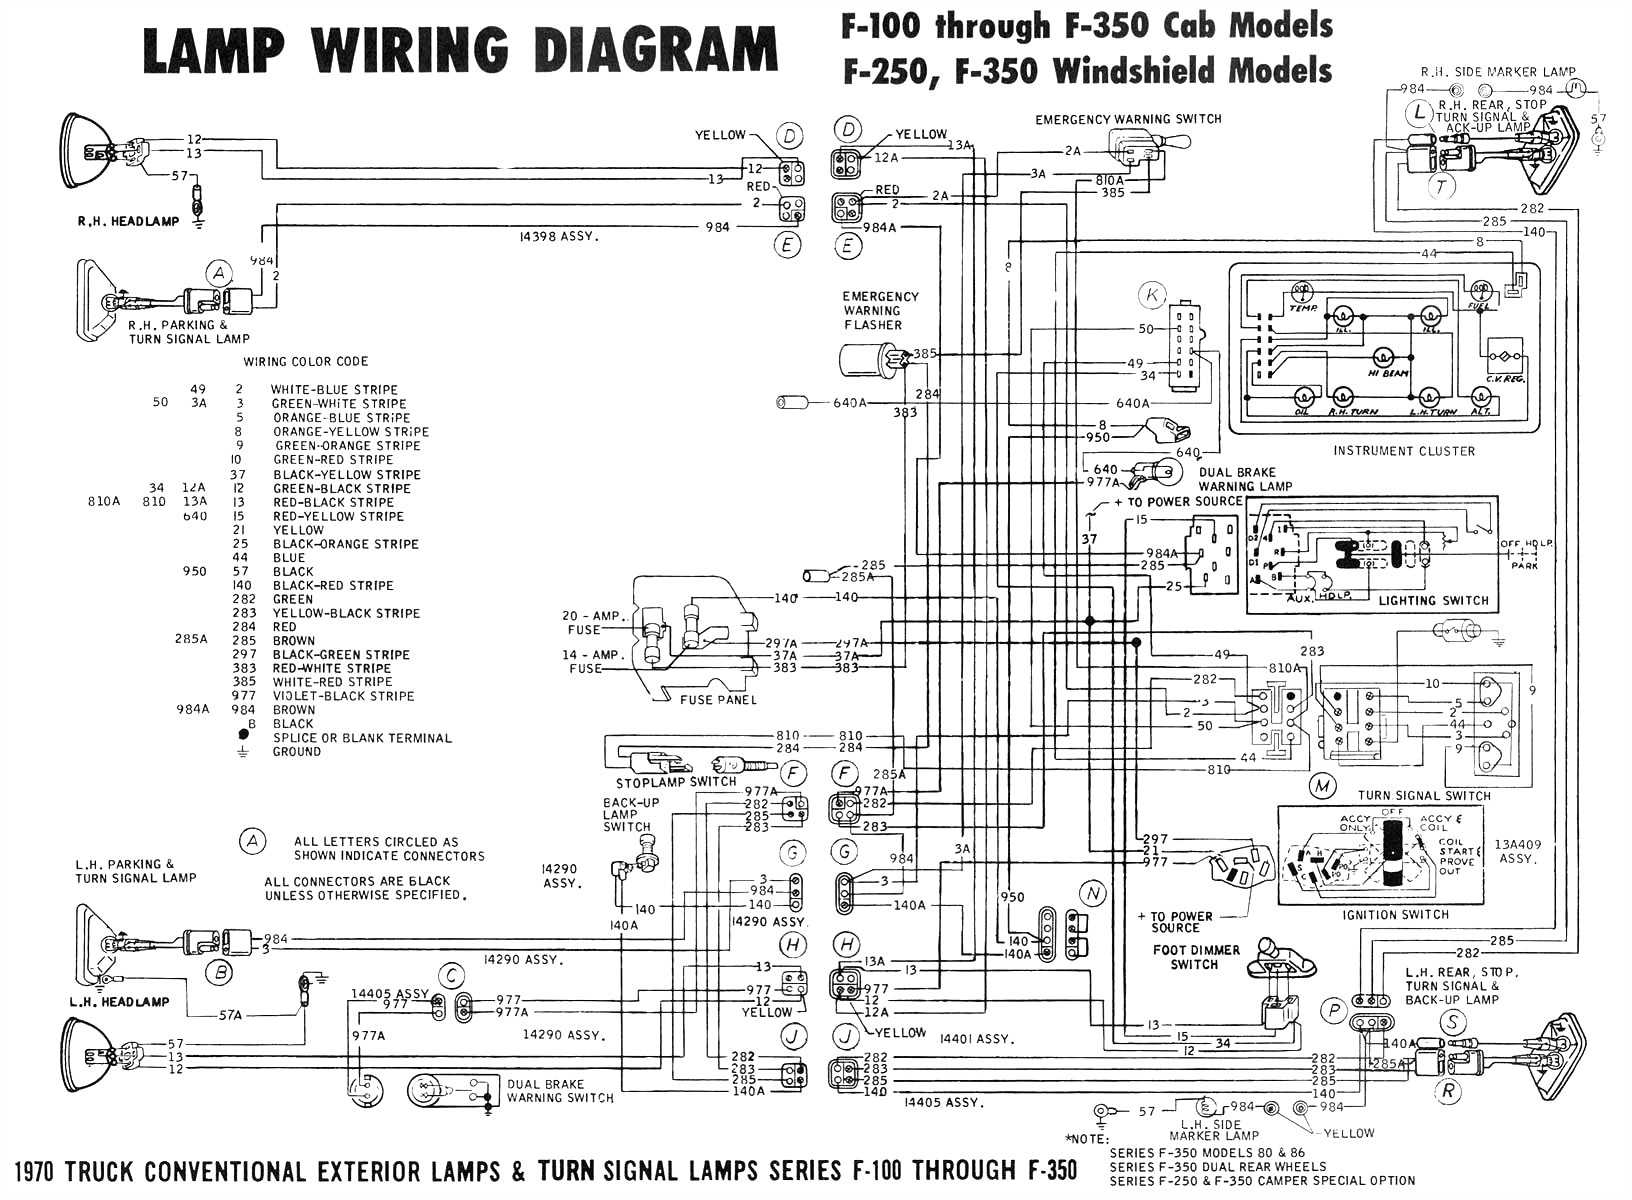 87 ford f250 tail light wiring diagram wiring diagram option 87 ford f250 tail light wiring diagram